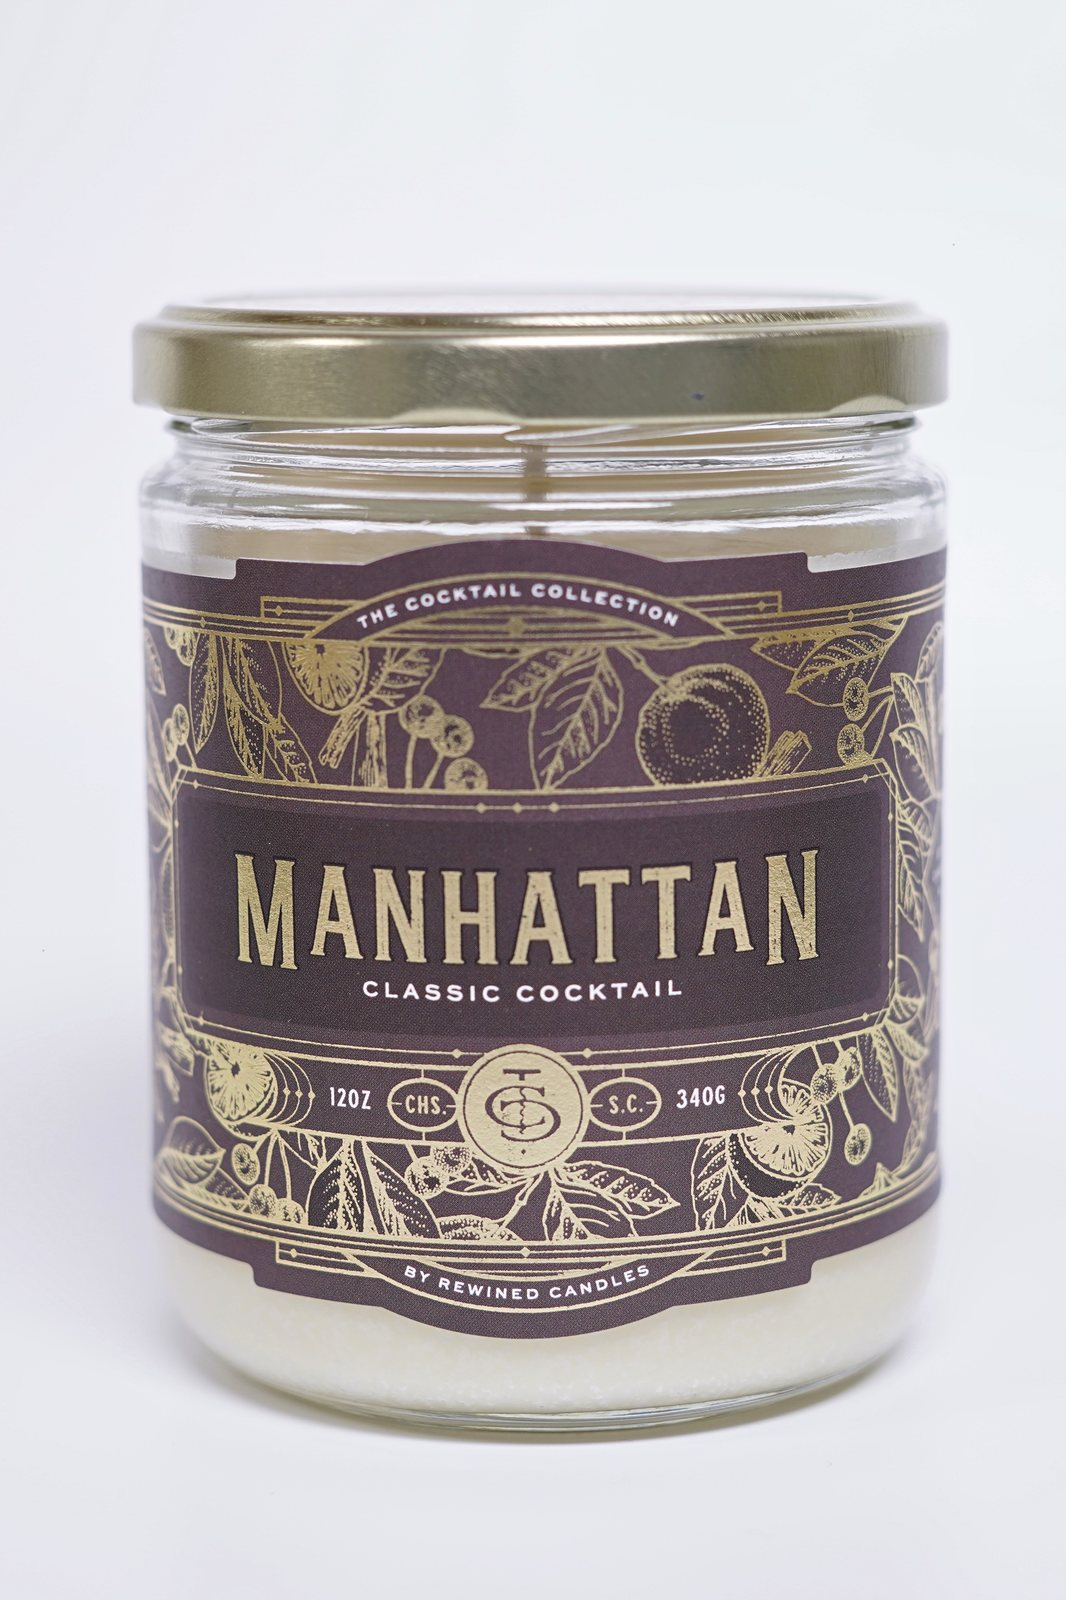 Rewined Candles lumanare parfumata Manhattan